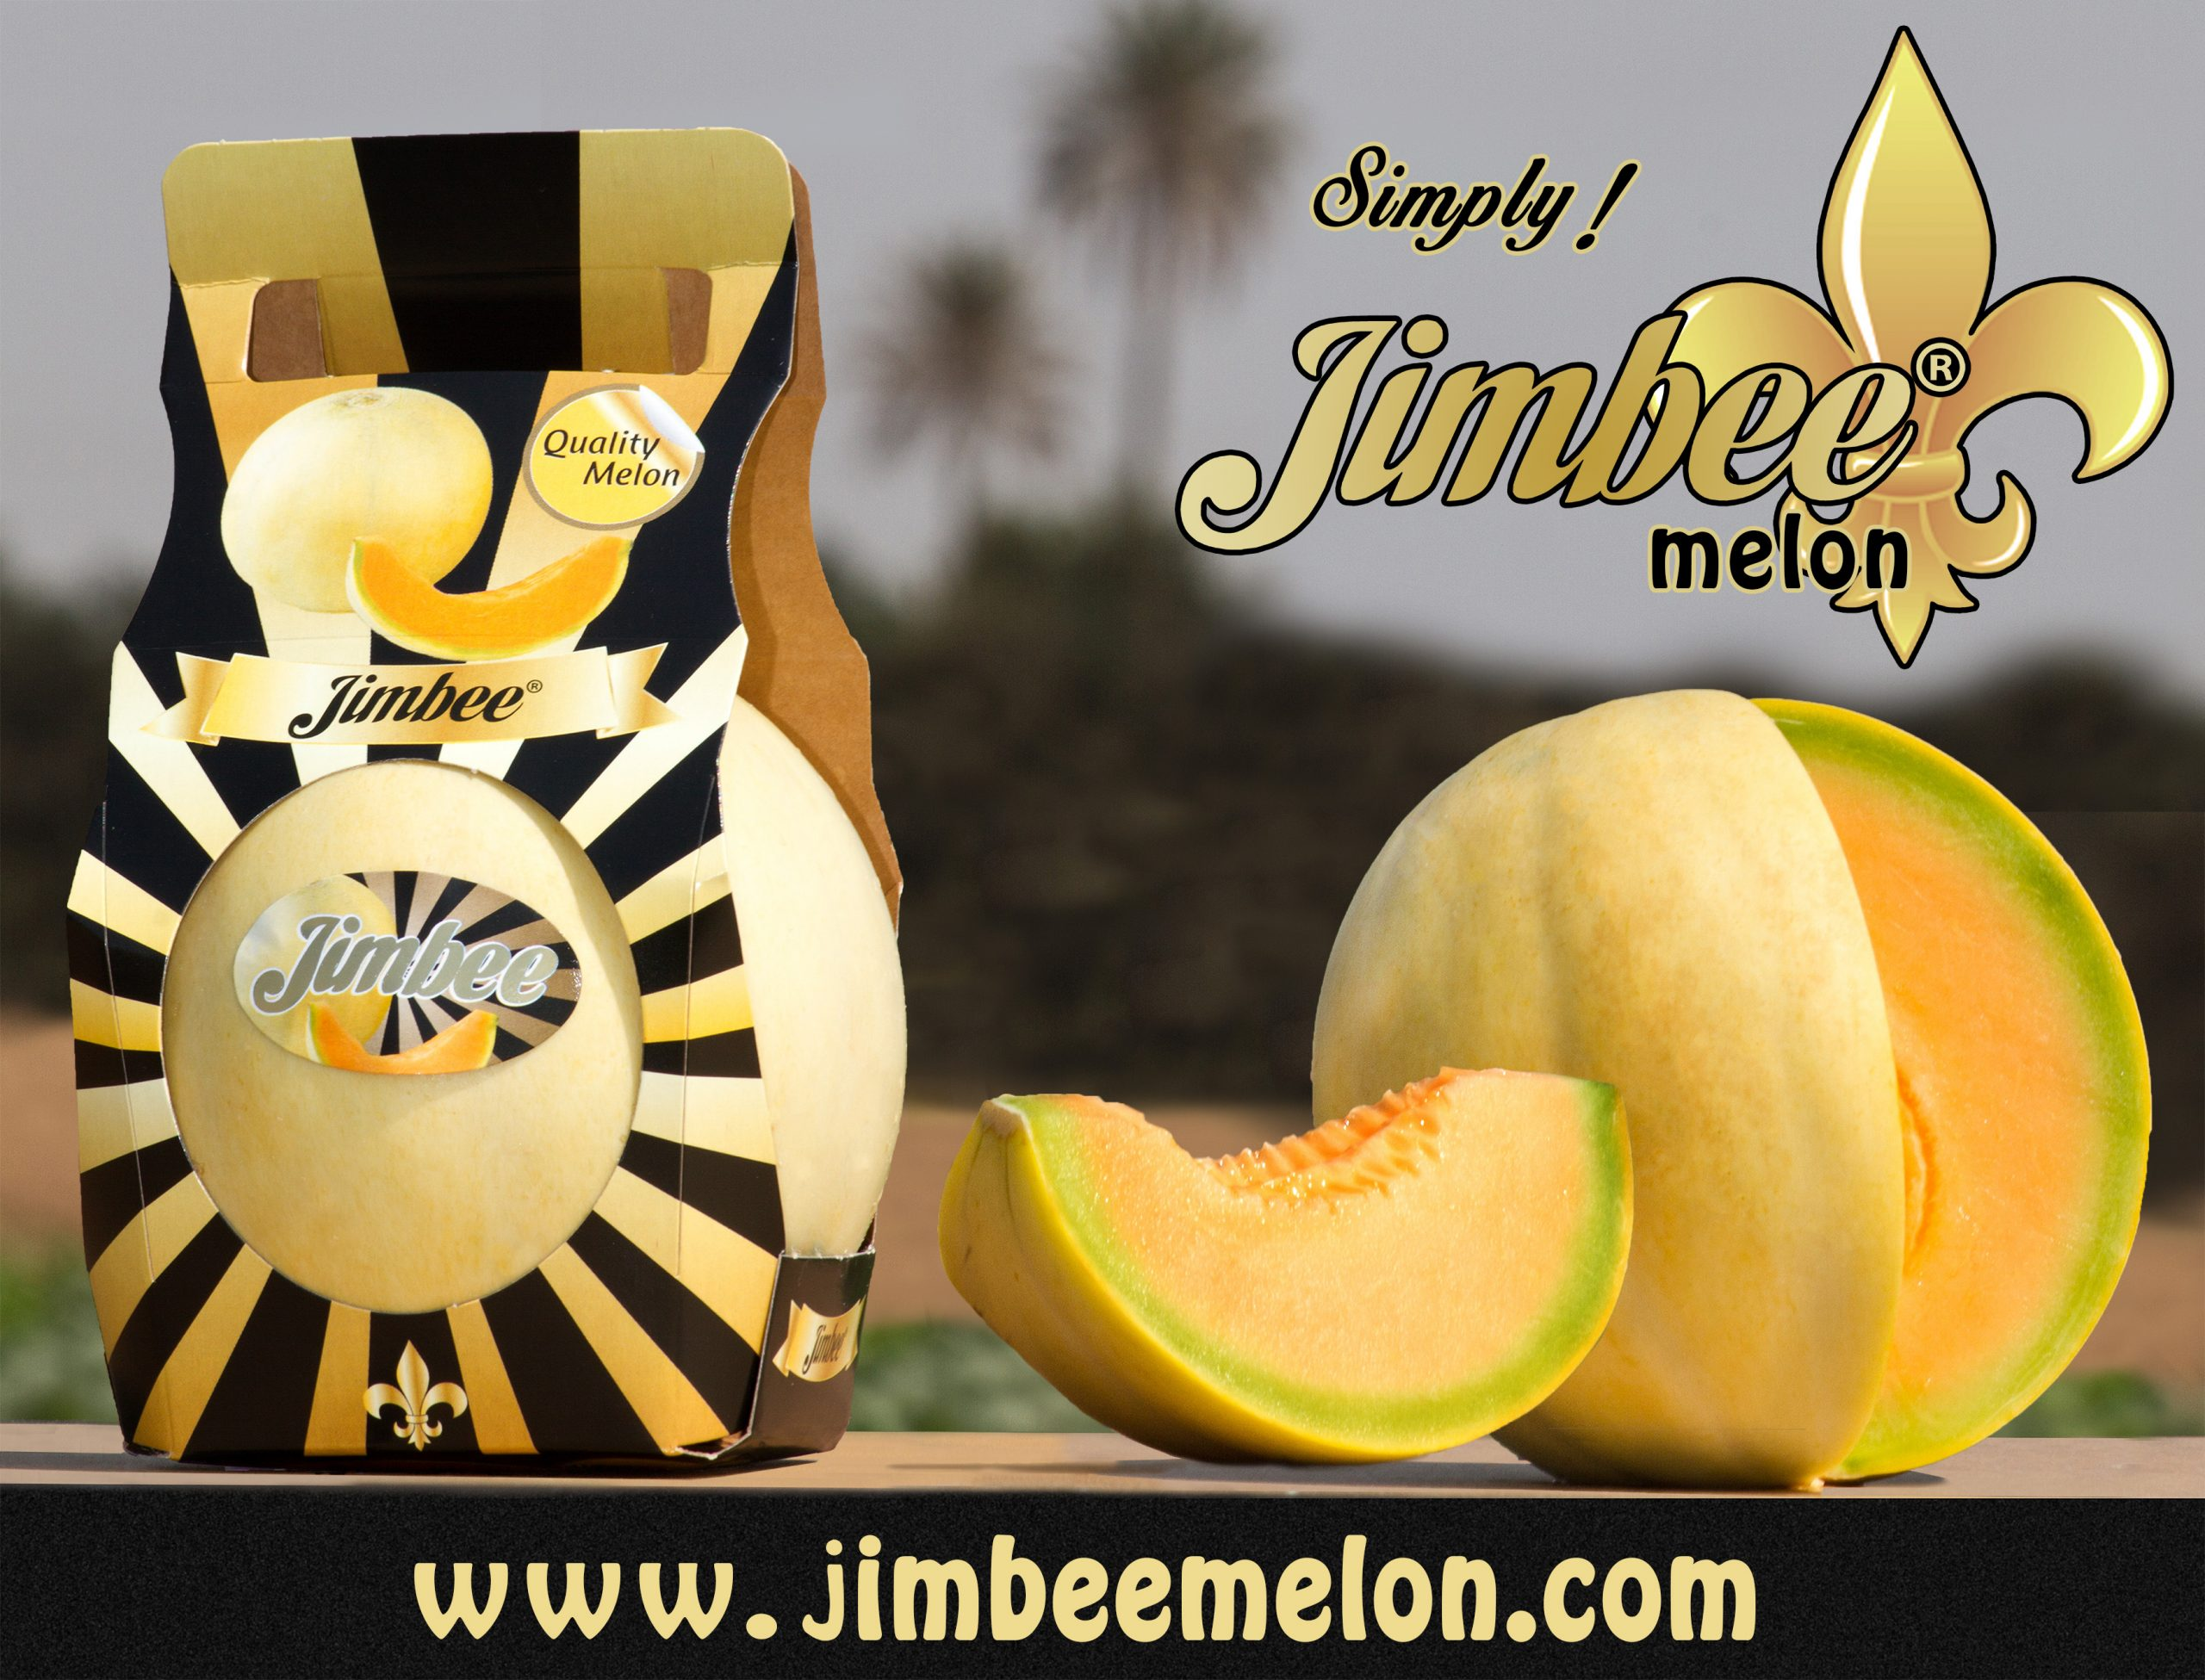 Okashi is a traditional Galia melon but with a unique taste, an intense aroma and unbeatable quality characteristics